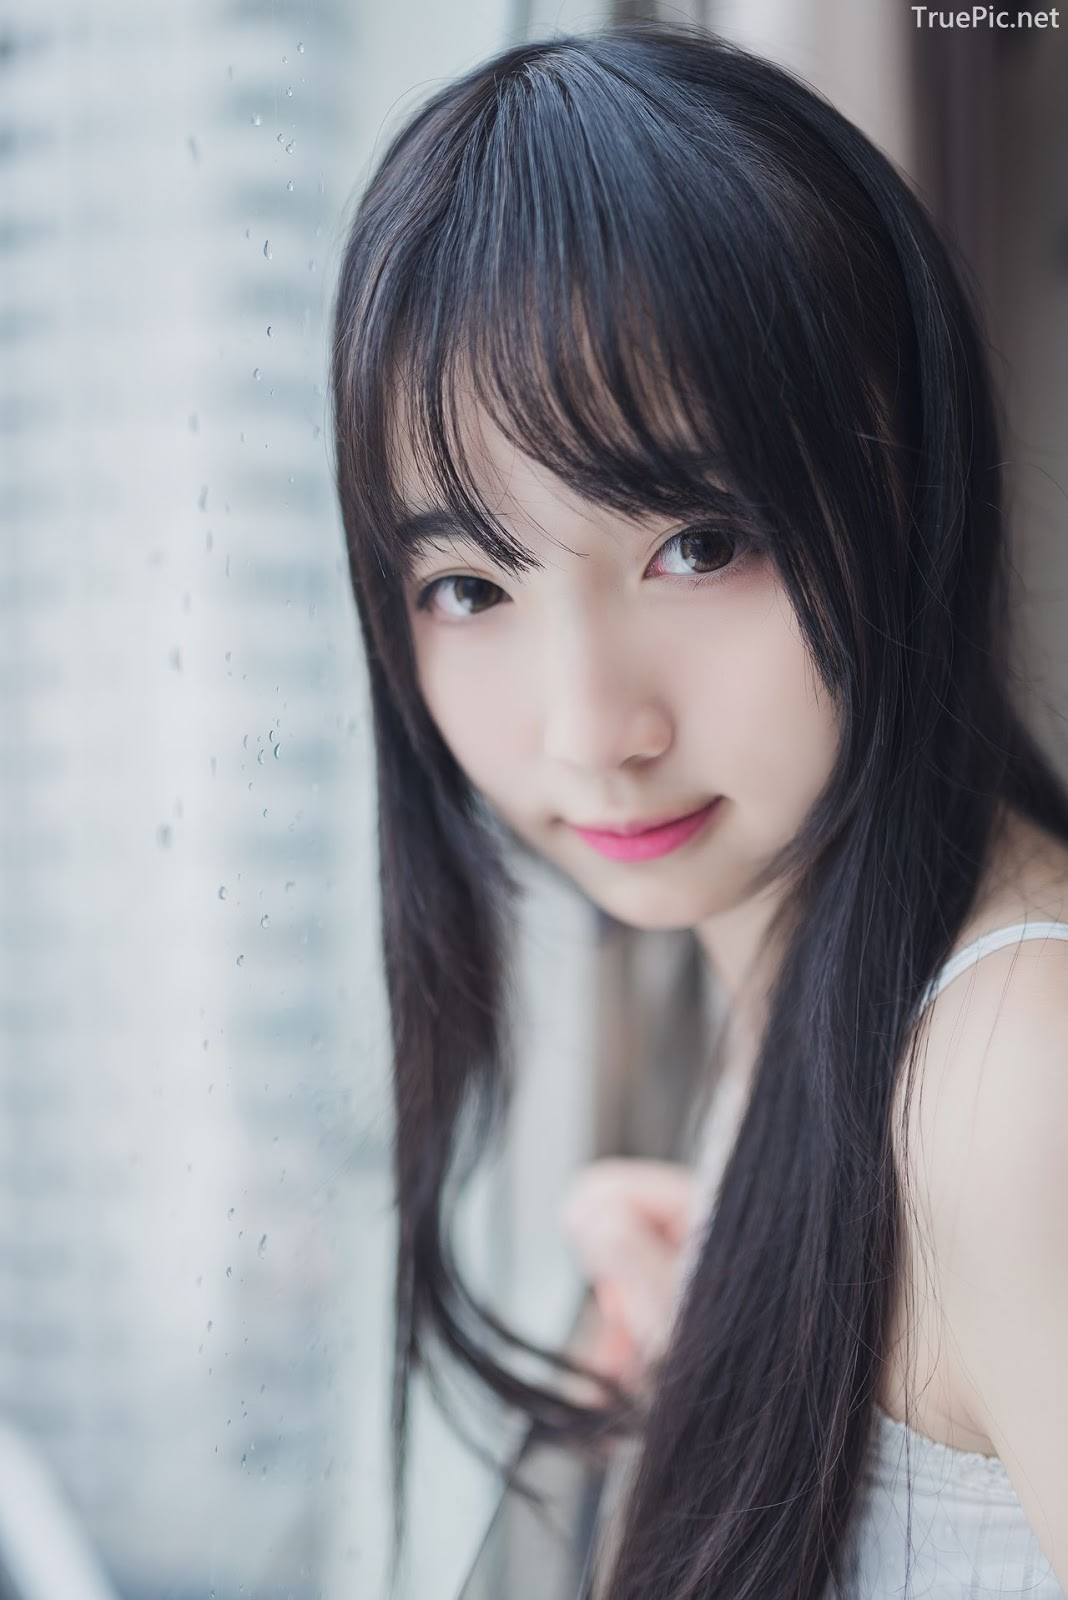 [MTCos] 喵糖映画 Vol.006 – Young Chinese model with innocent smile - Picture 3